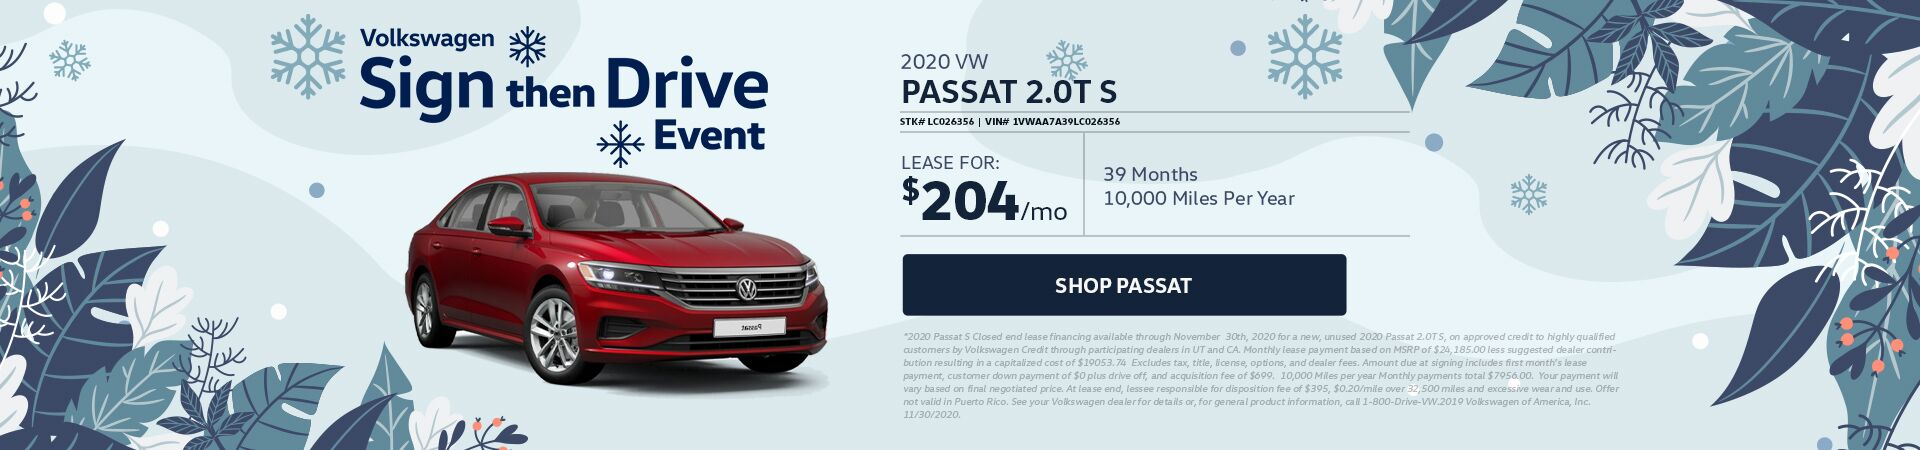 Passat - updated 11.12.20